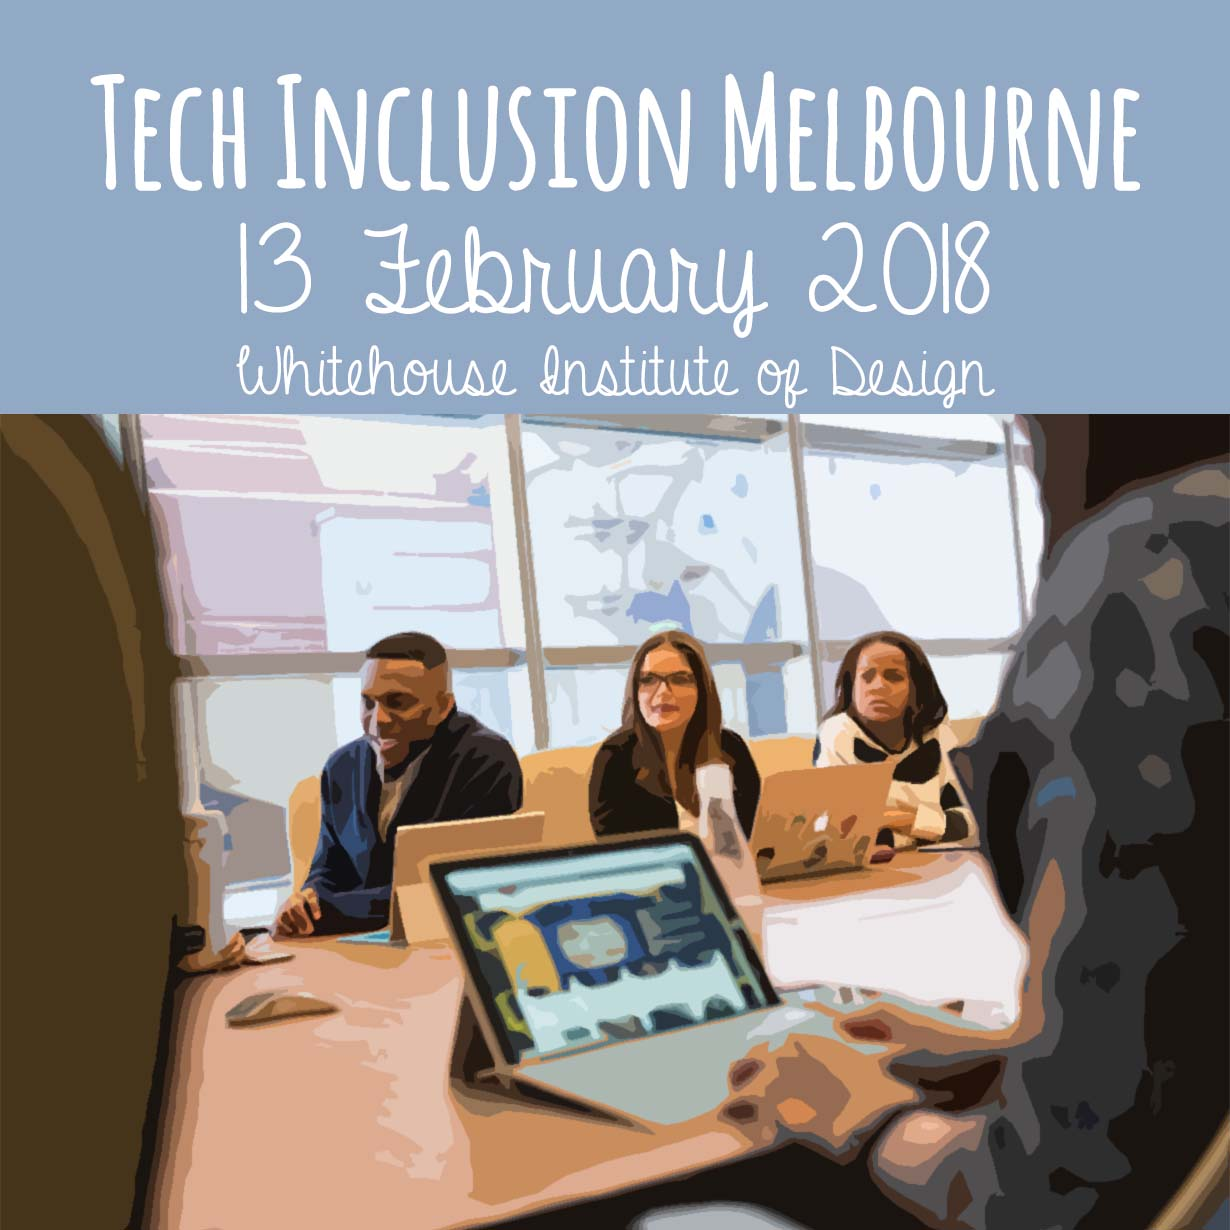 Event: Tech Inclusion Melbourne